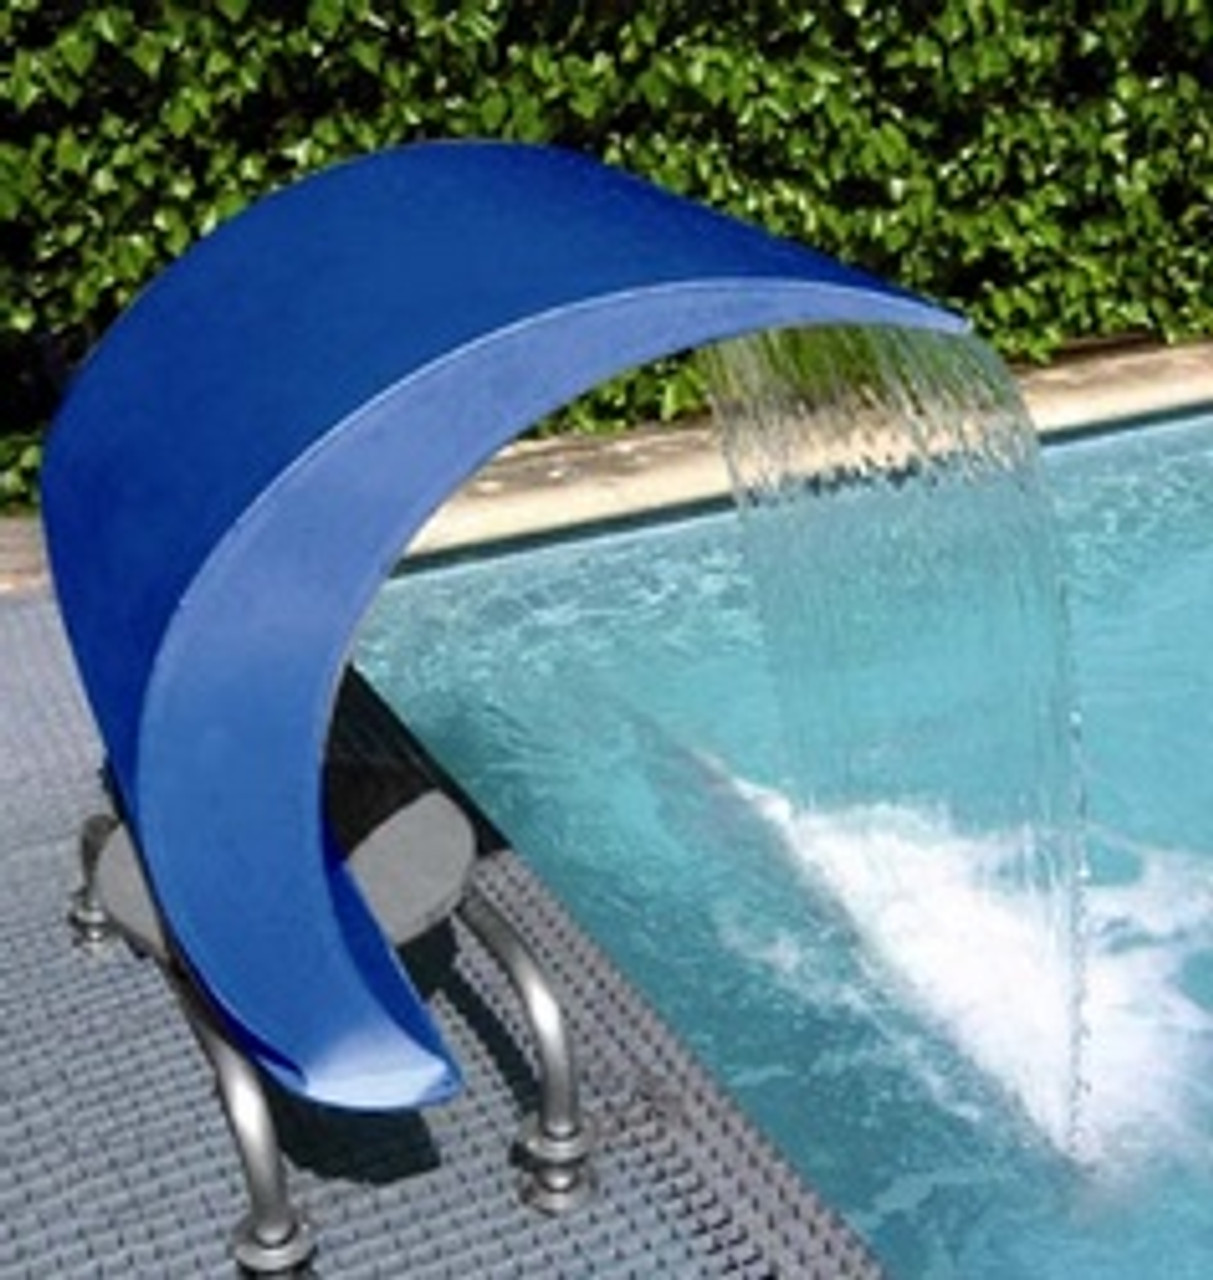 The Swan Curtain 1000 Swimming Pool Water Fountain in painted Blue Ral (34391)